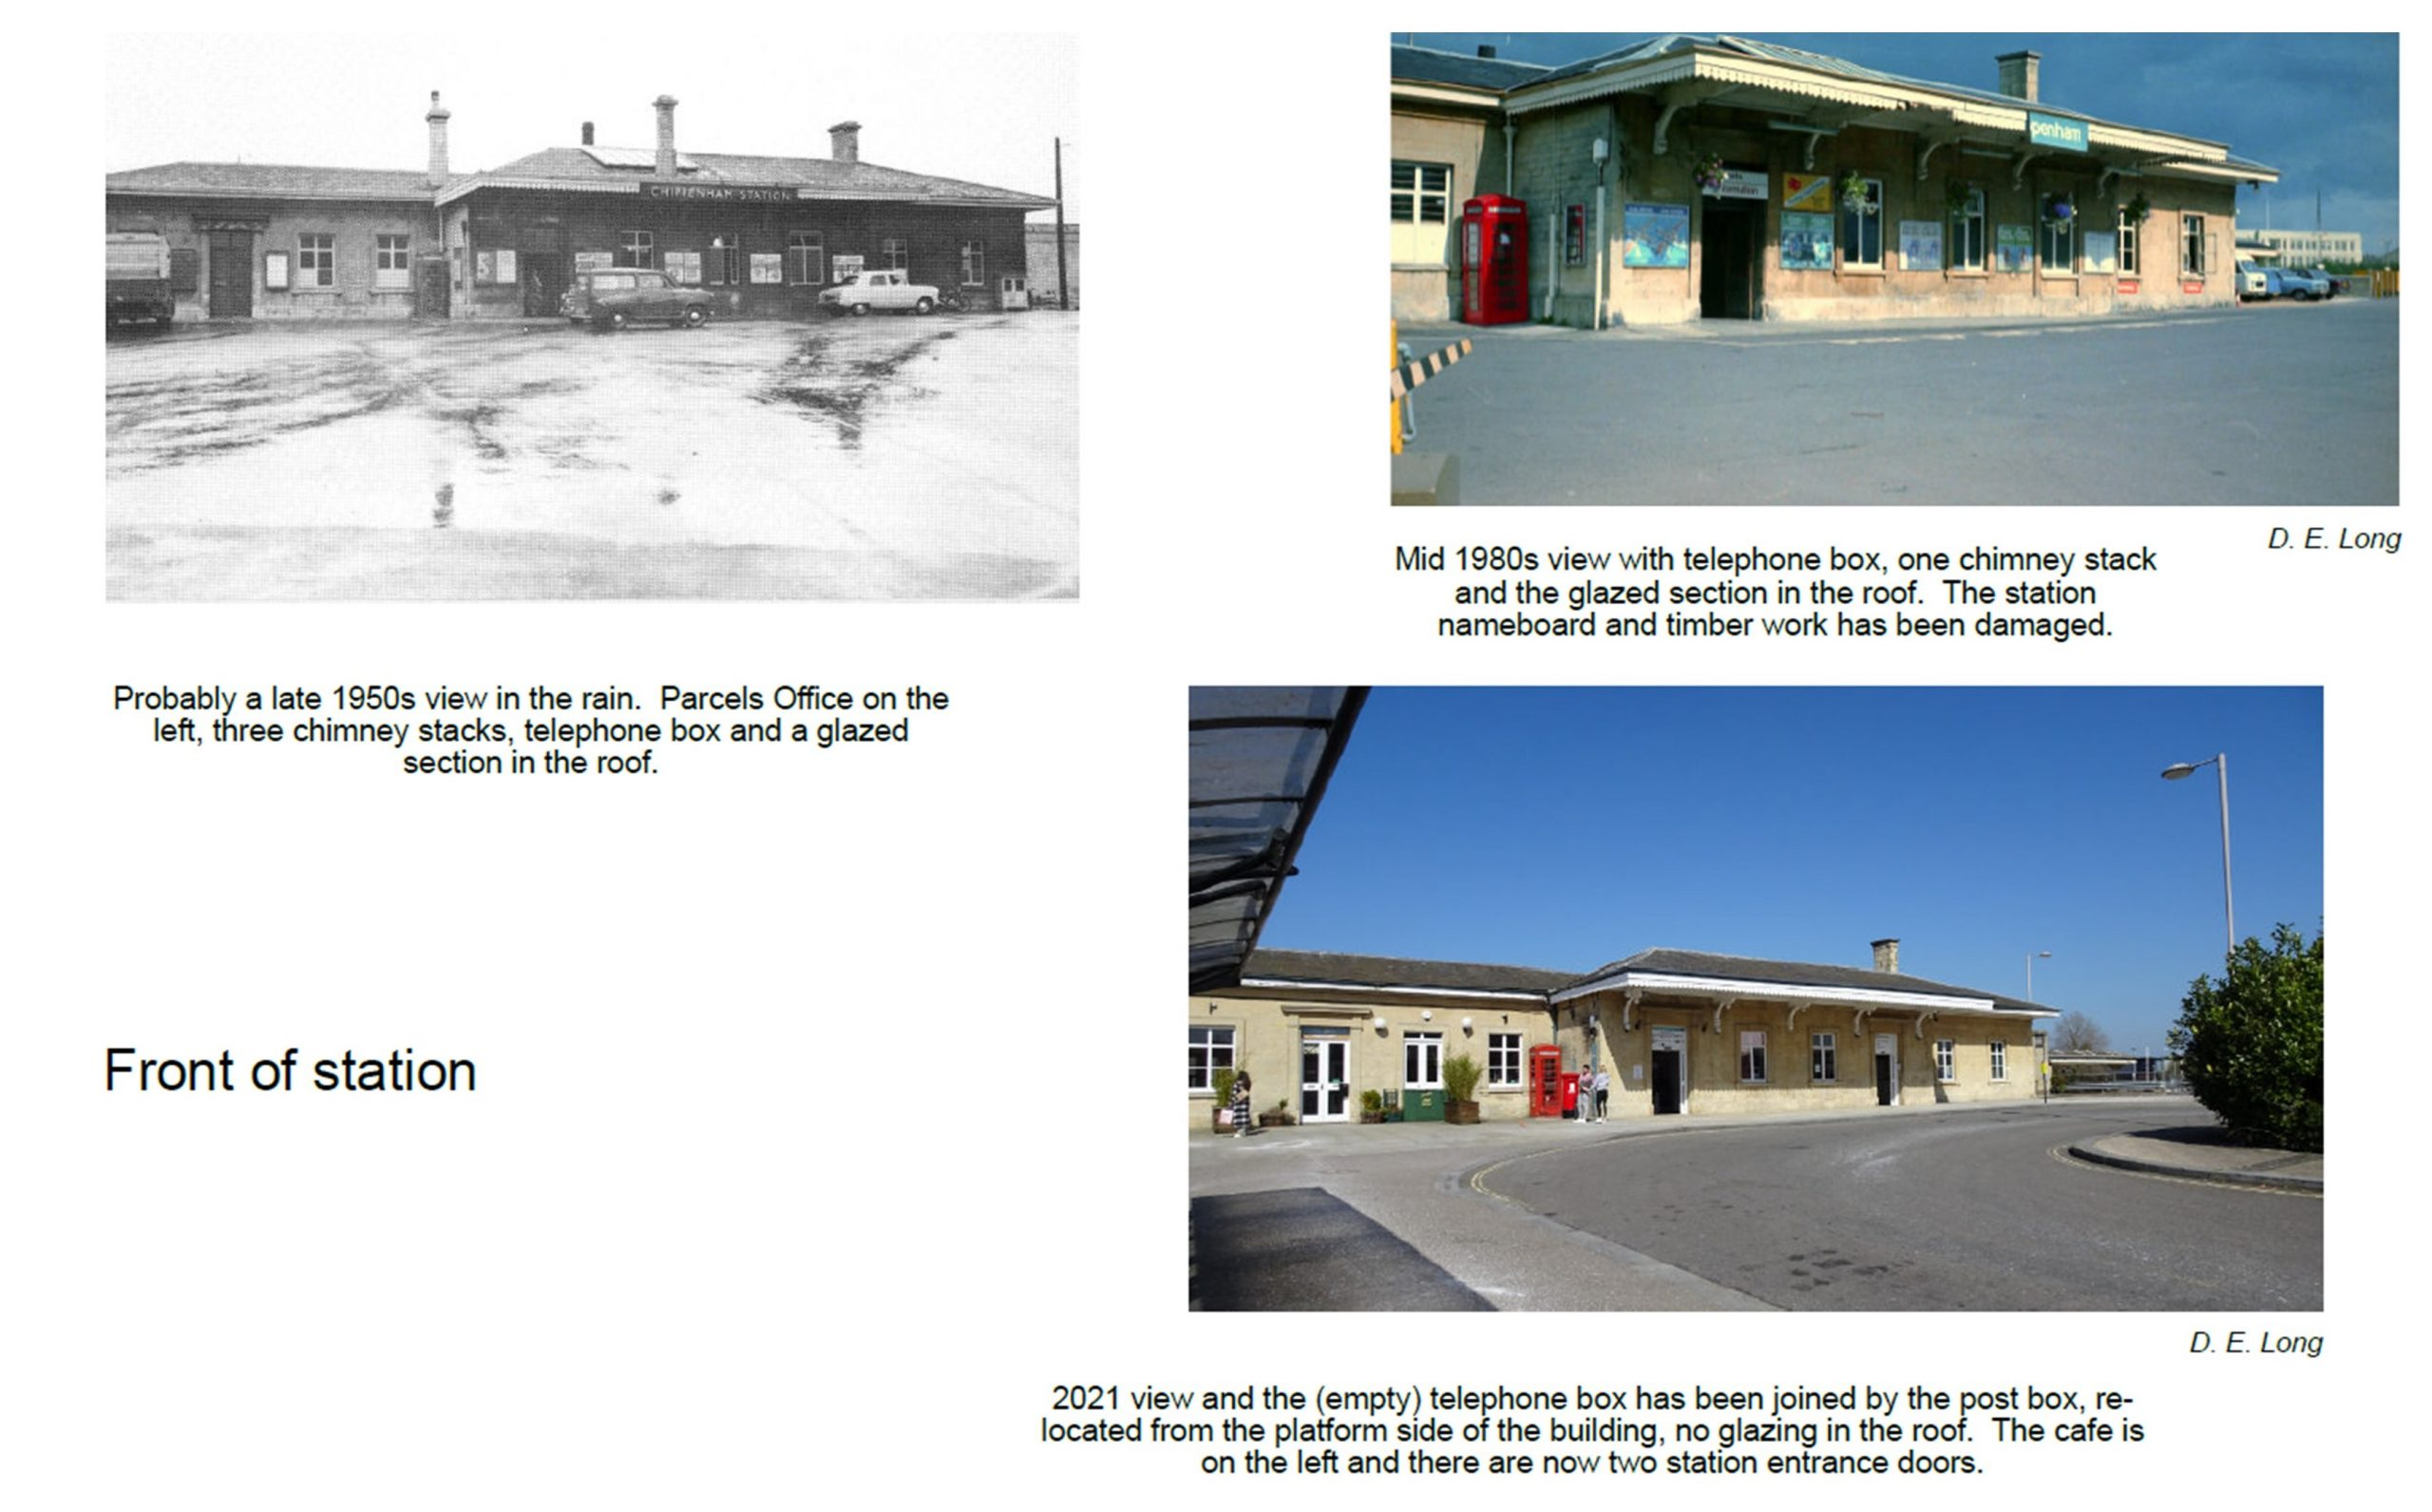 The front of the station in the 1950s, mid 1980 and today. In the 1950s the site used as a cafe today was a parcels office.